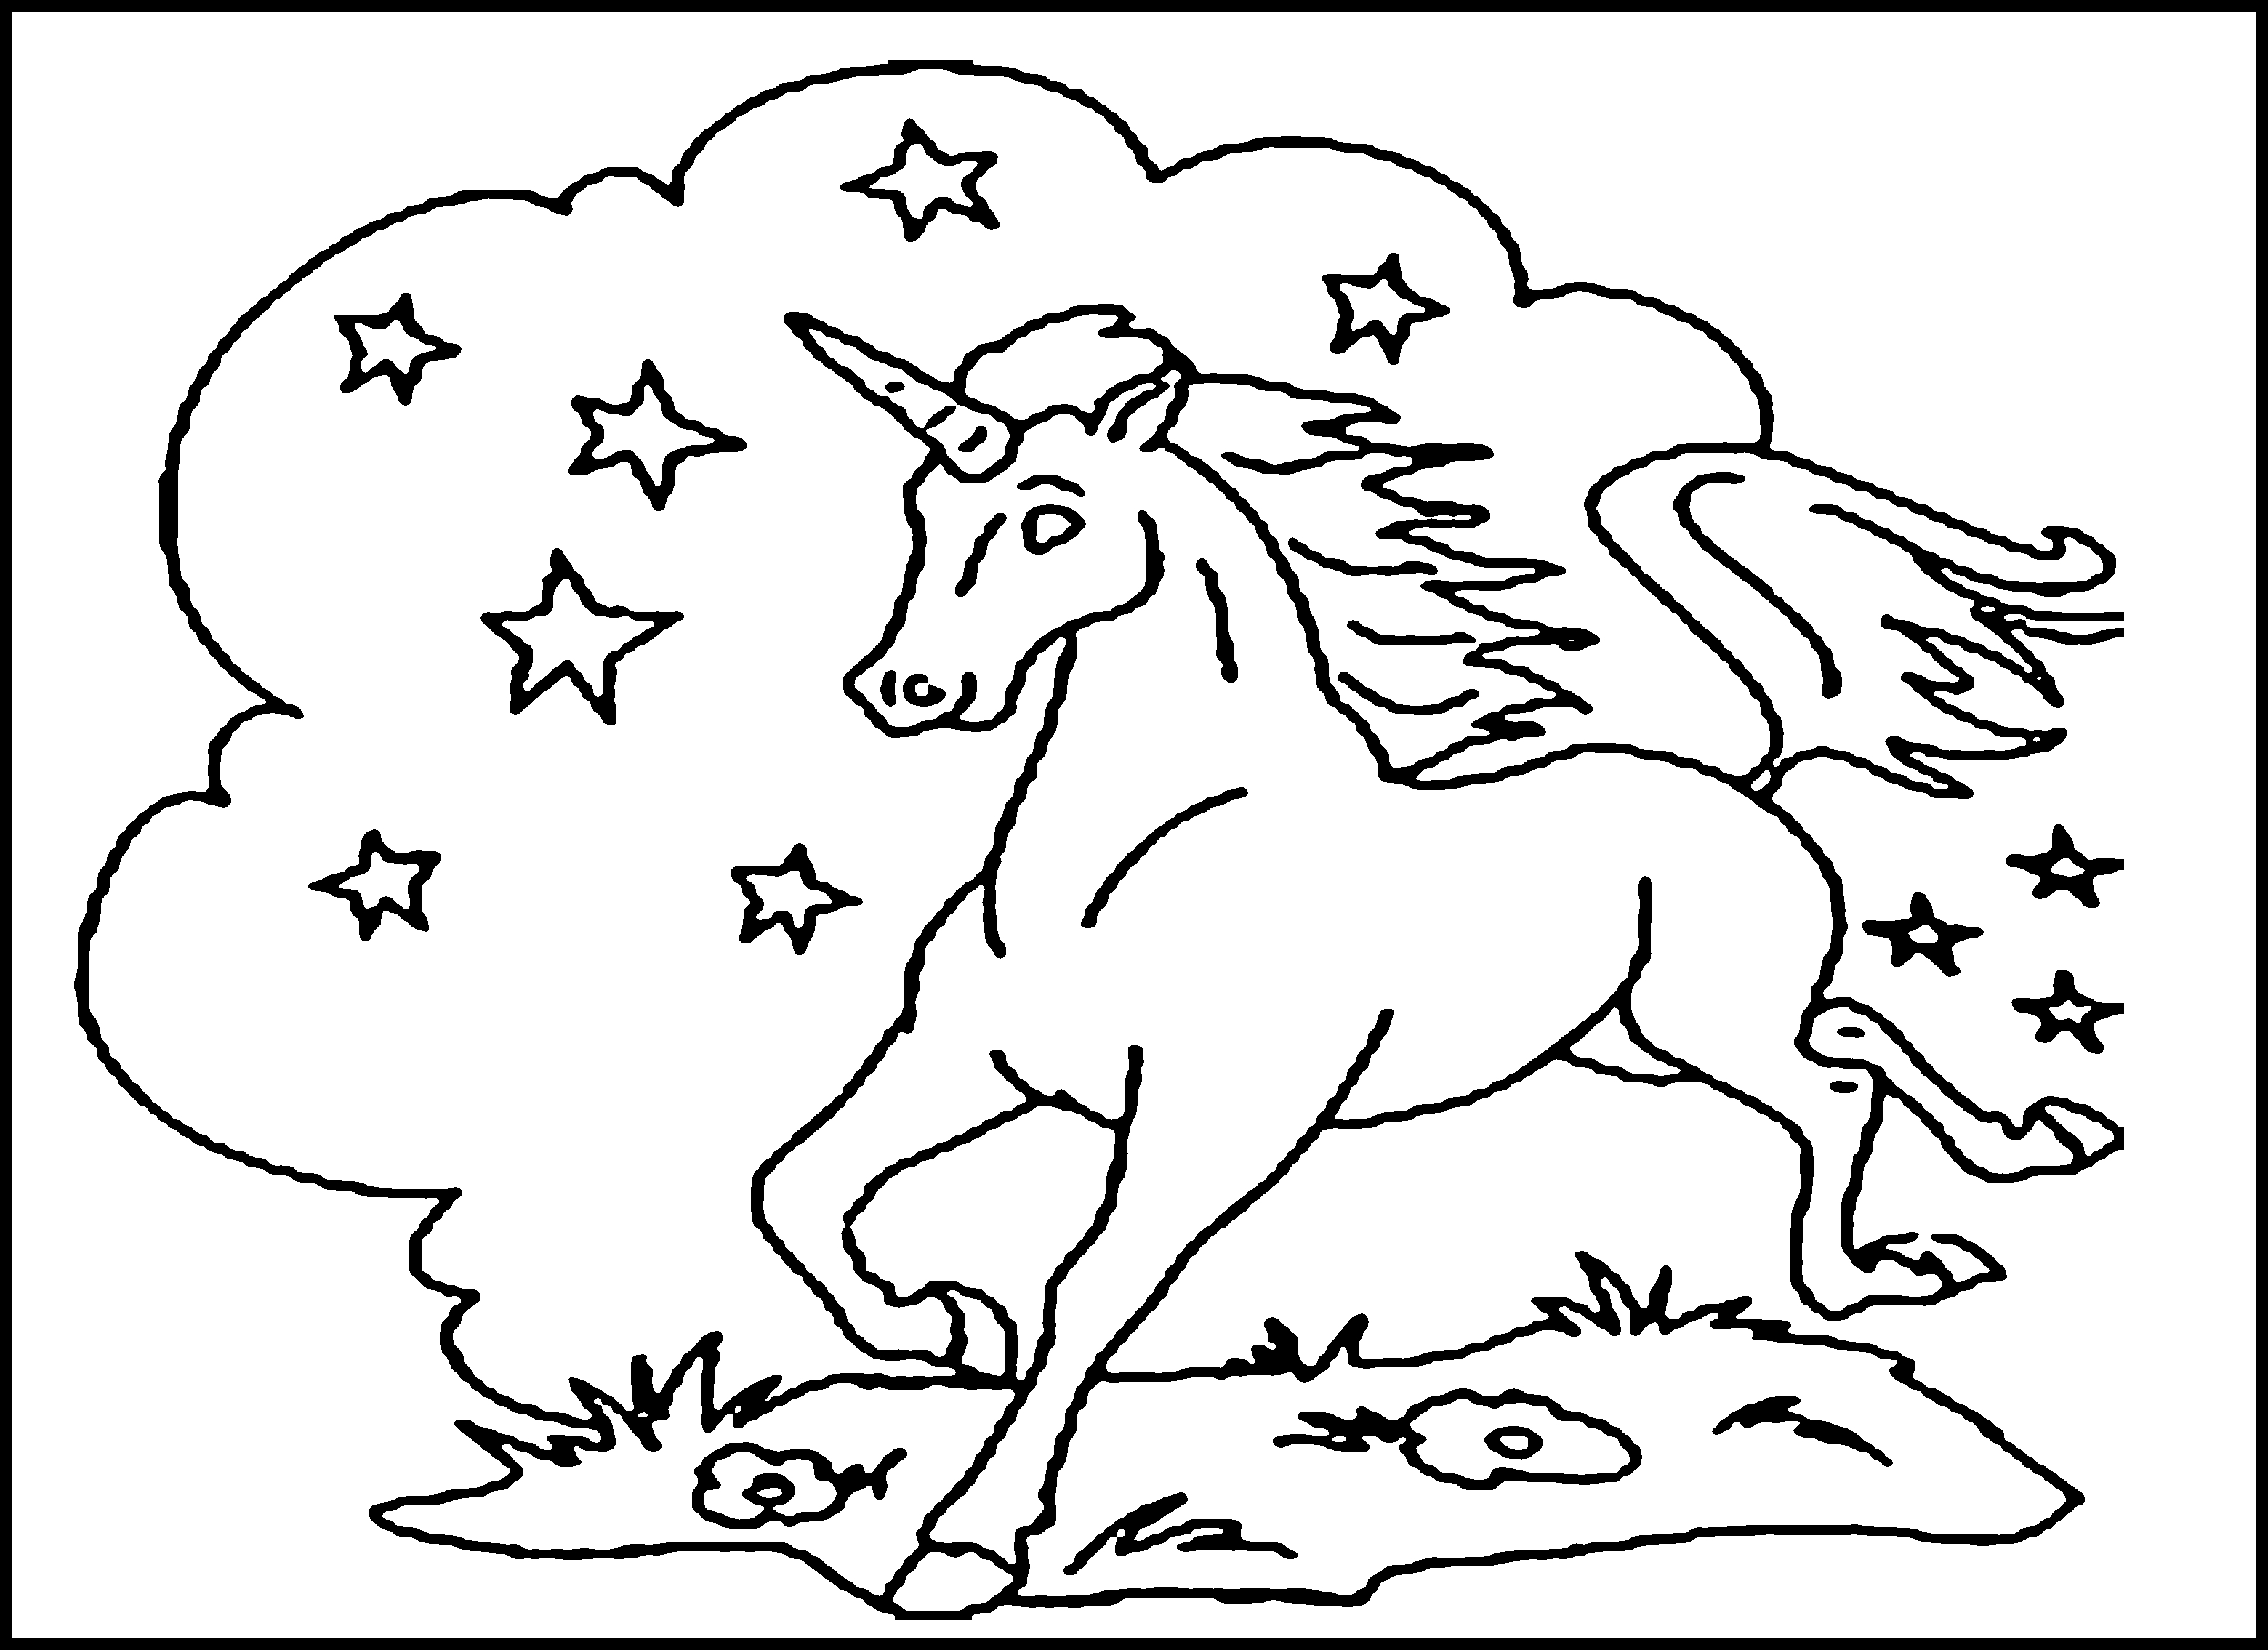 Coloring Pages that You Can Color On the Computer Collection 10t - Free Download